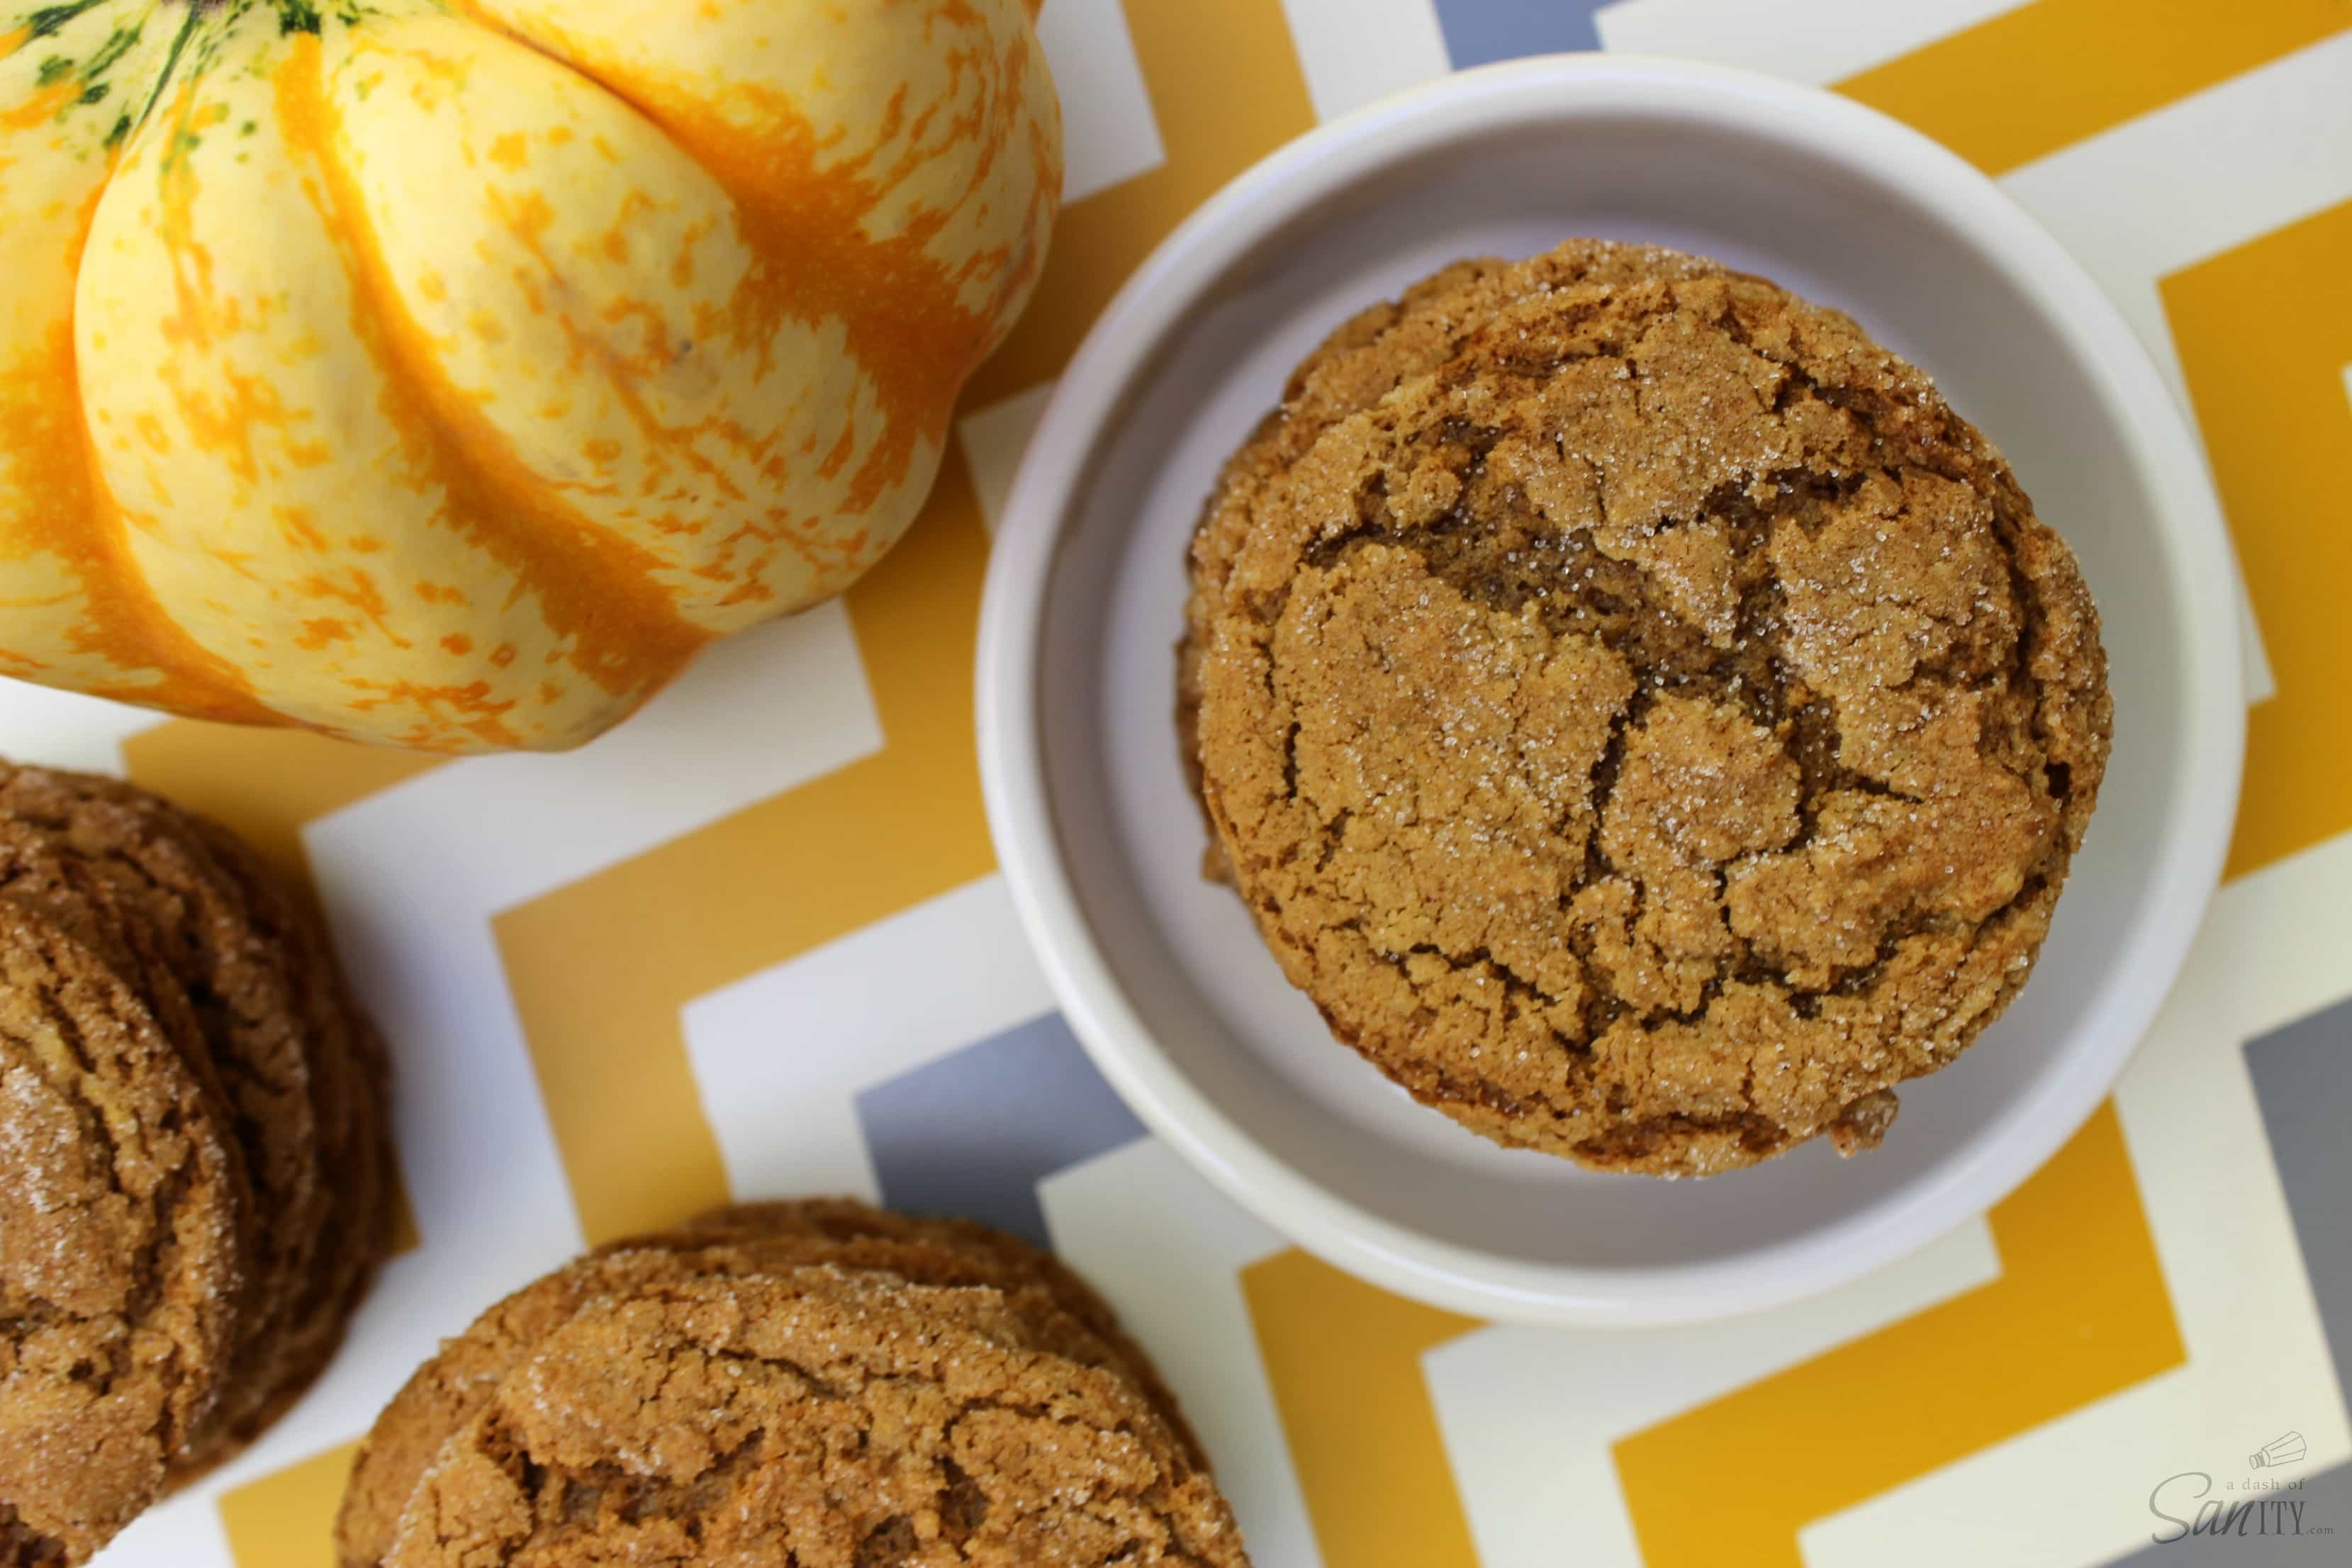 These Pumpkin Ginger Cookies are the perfect addition to your holiday. Made with ginger, molasses, spice, & pumpkin these are the best ginger cookies ever.